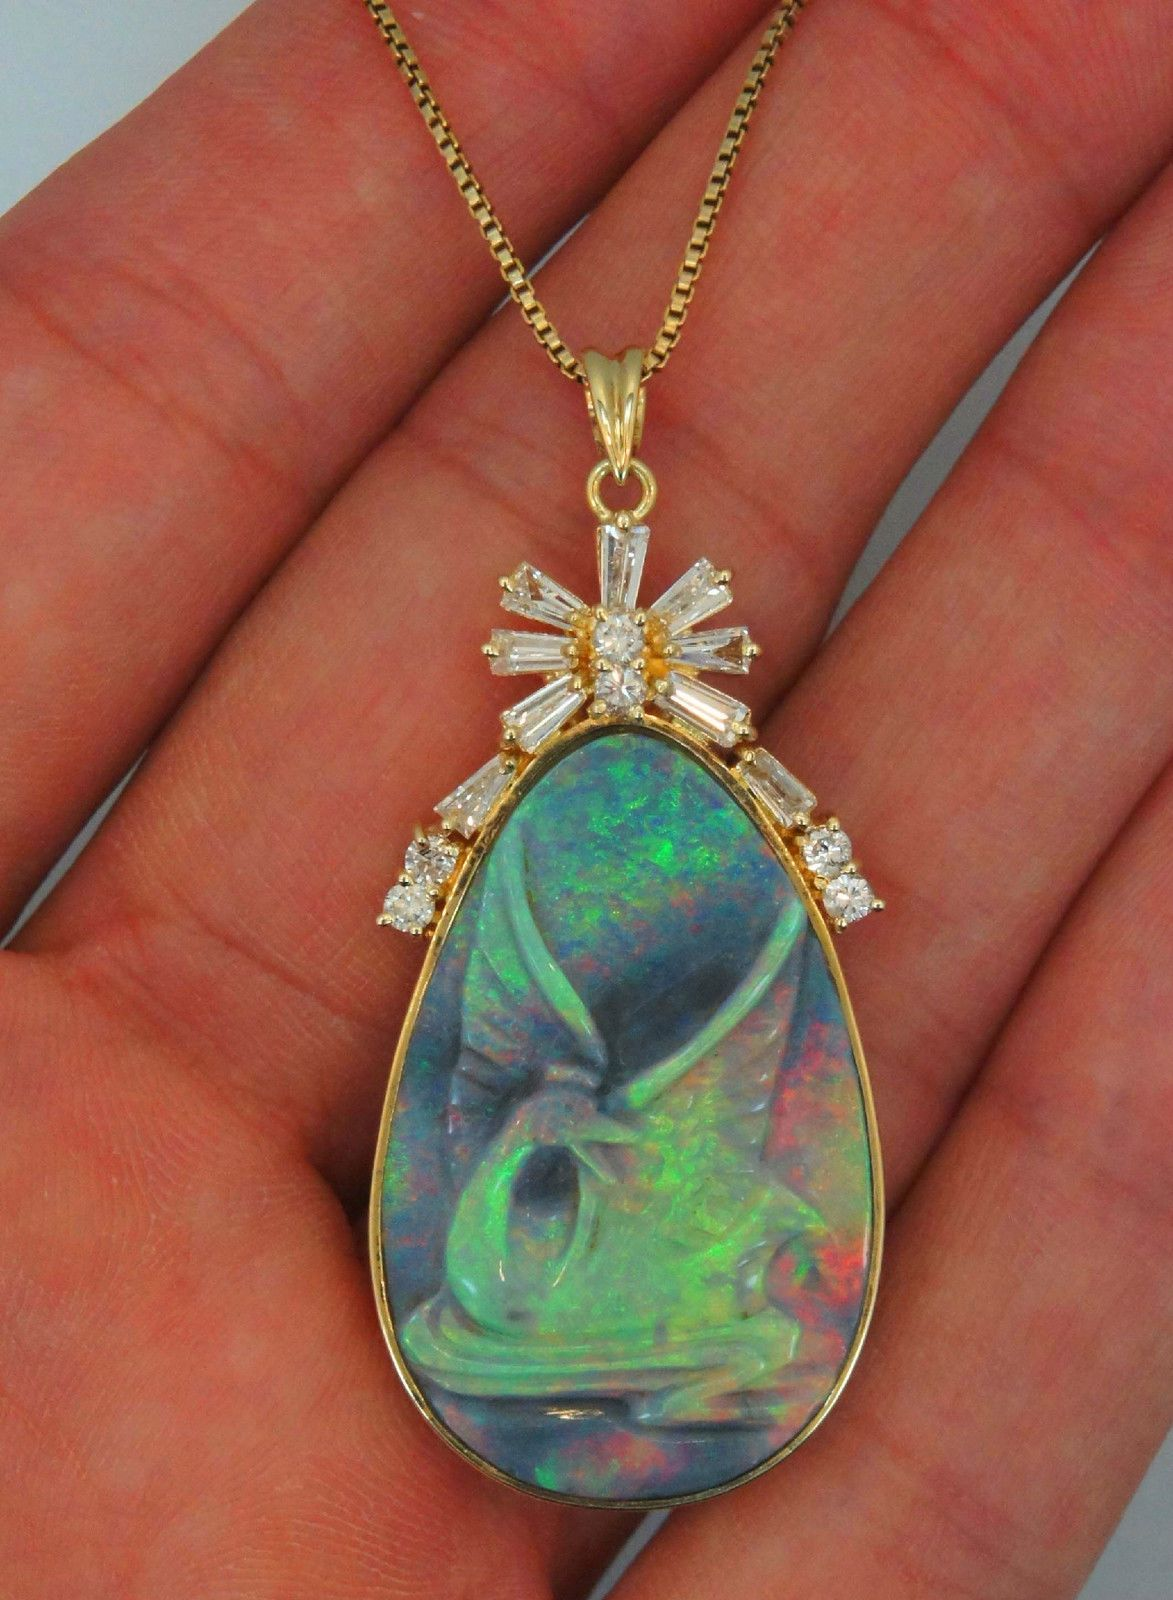 Australian black opal hand carved diamond pendant unique rare 14k custom made natural opal pendant very high quality australian black opal with lots of rainbow aloadofball Images